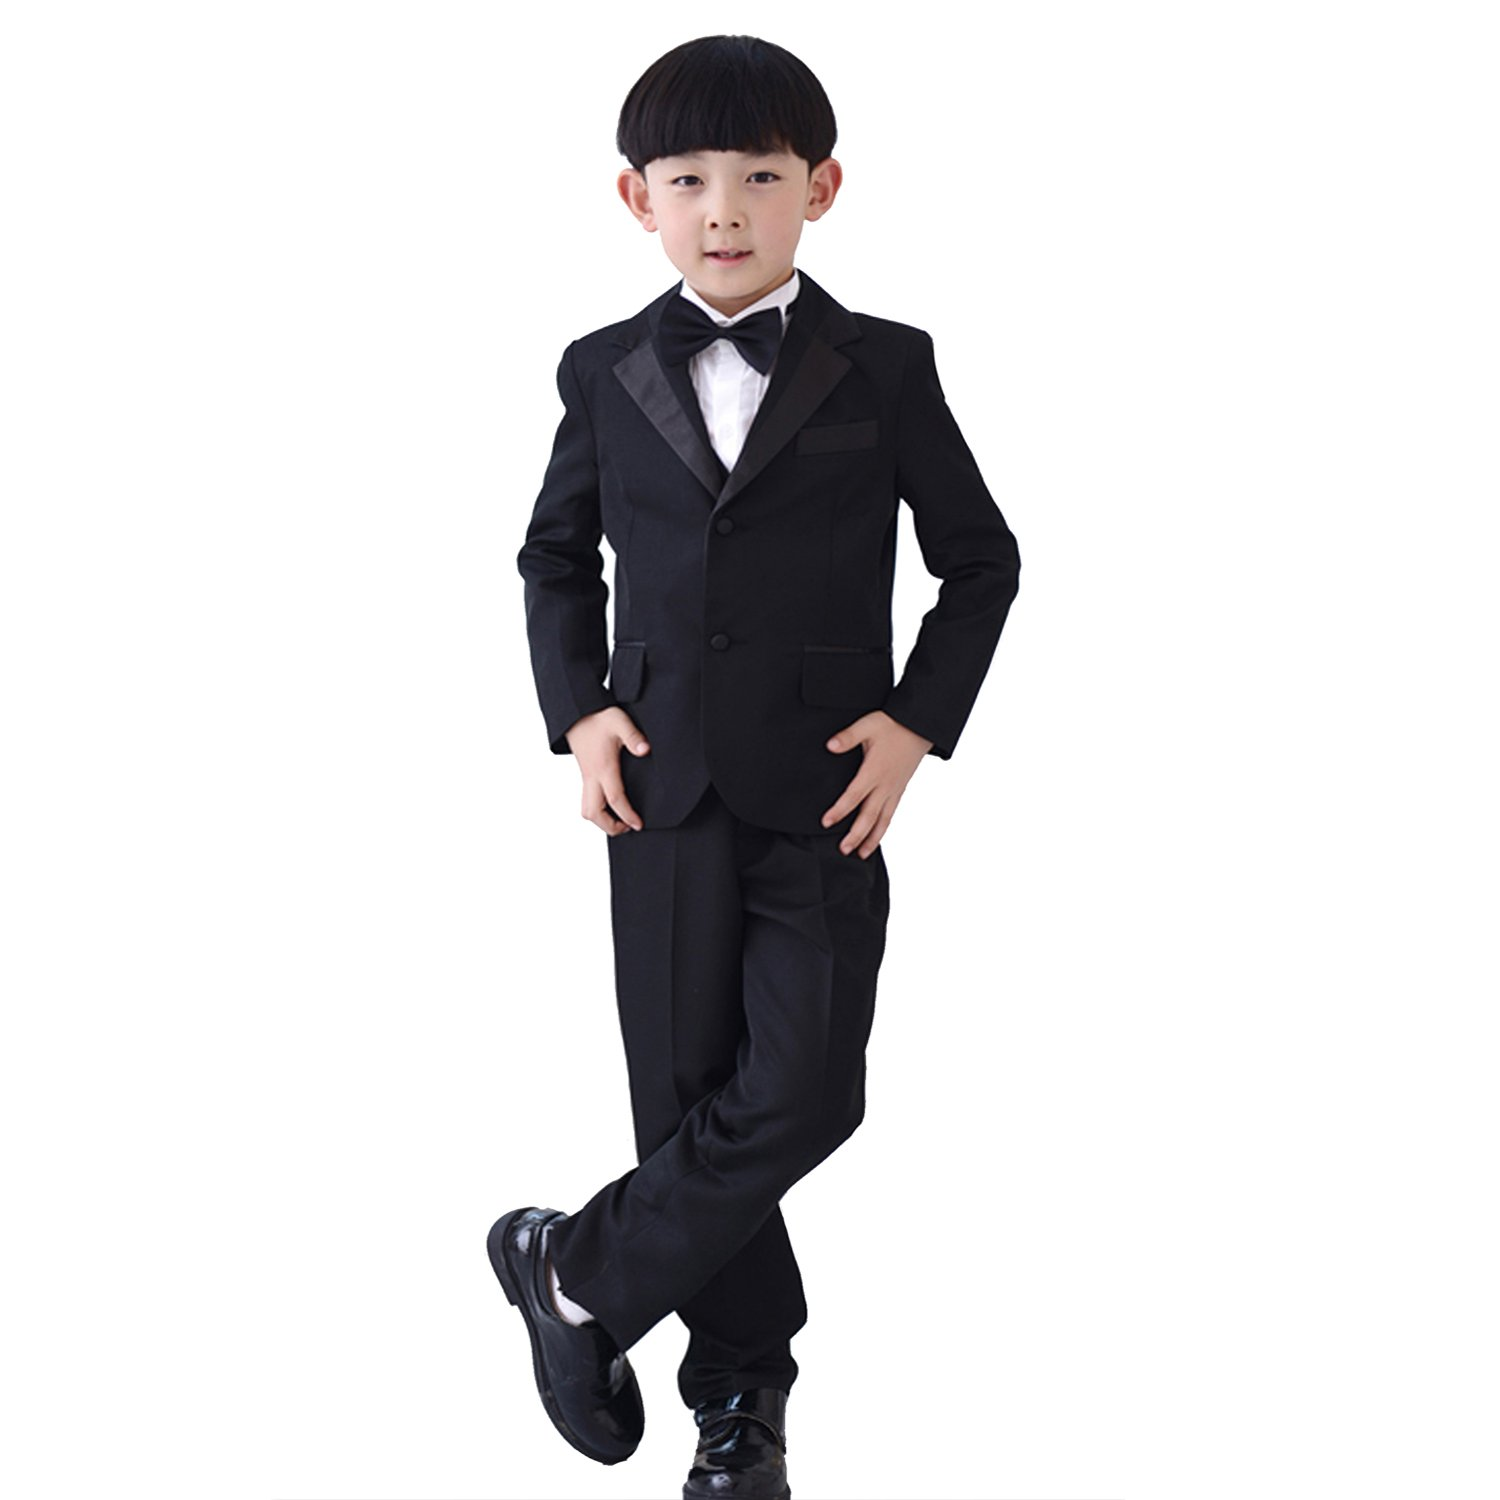 Dreamowl 5Pcs Boys Formal Blazer Children Tuxedo Ring Bearer Wedding Party Suit Black